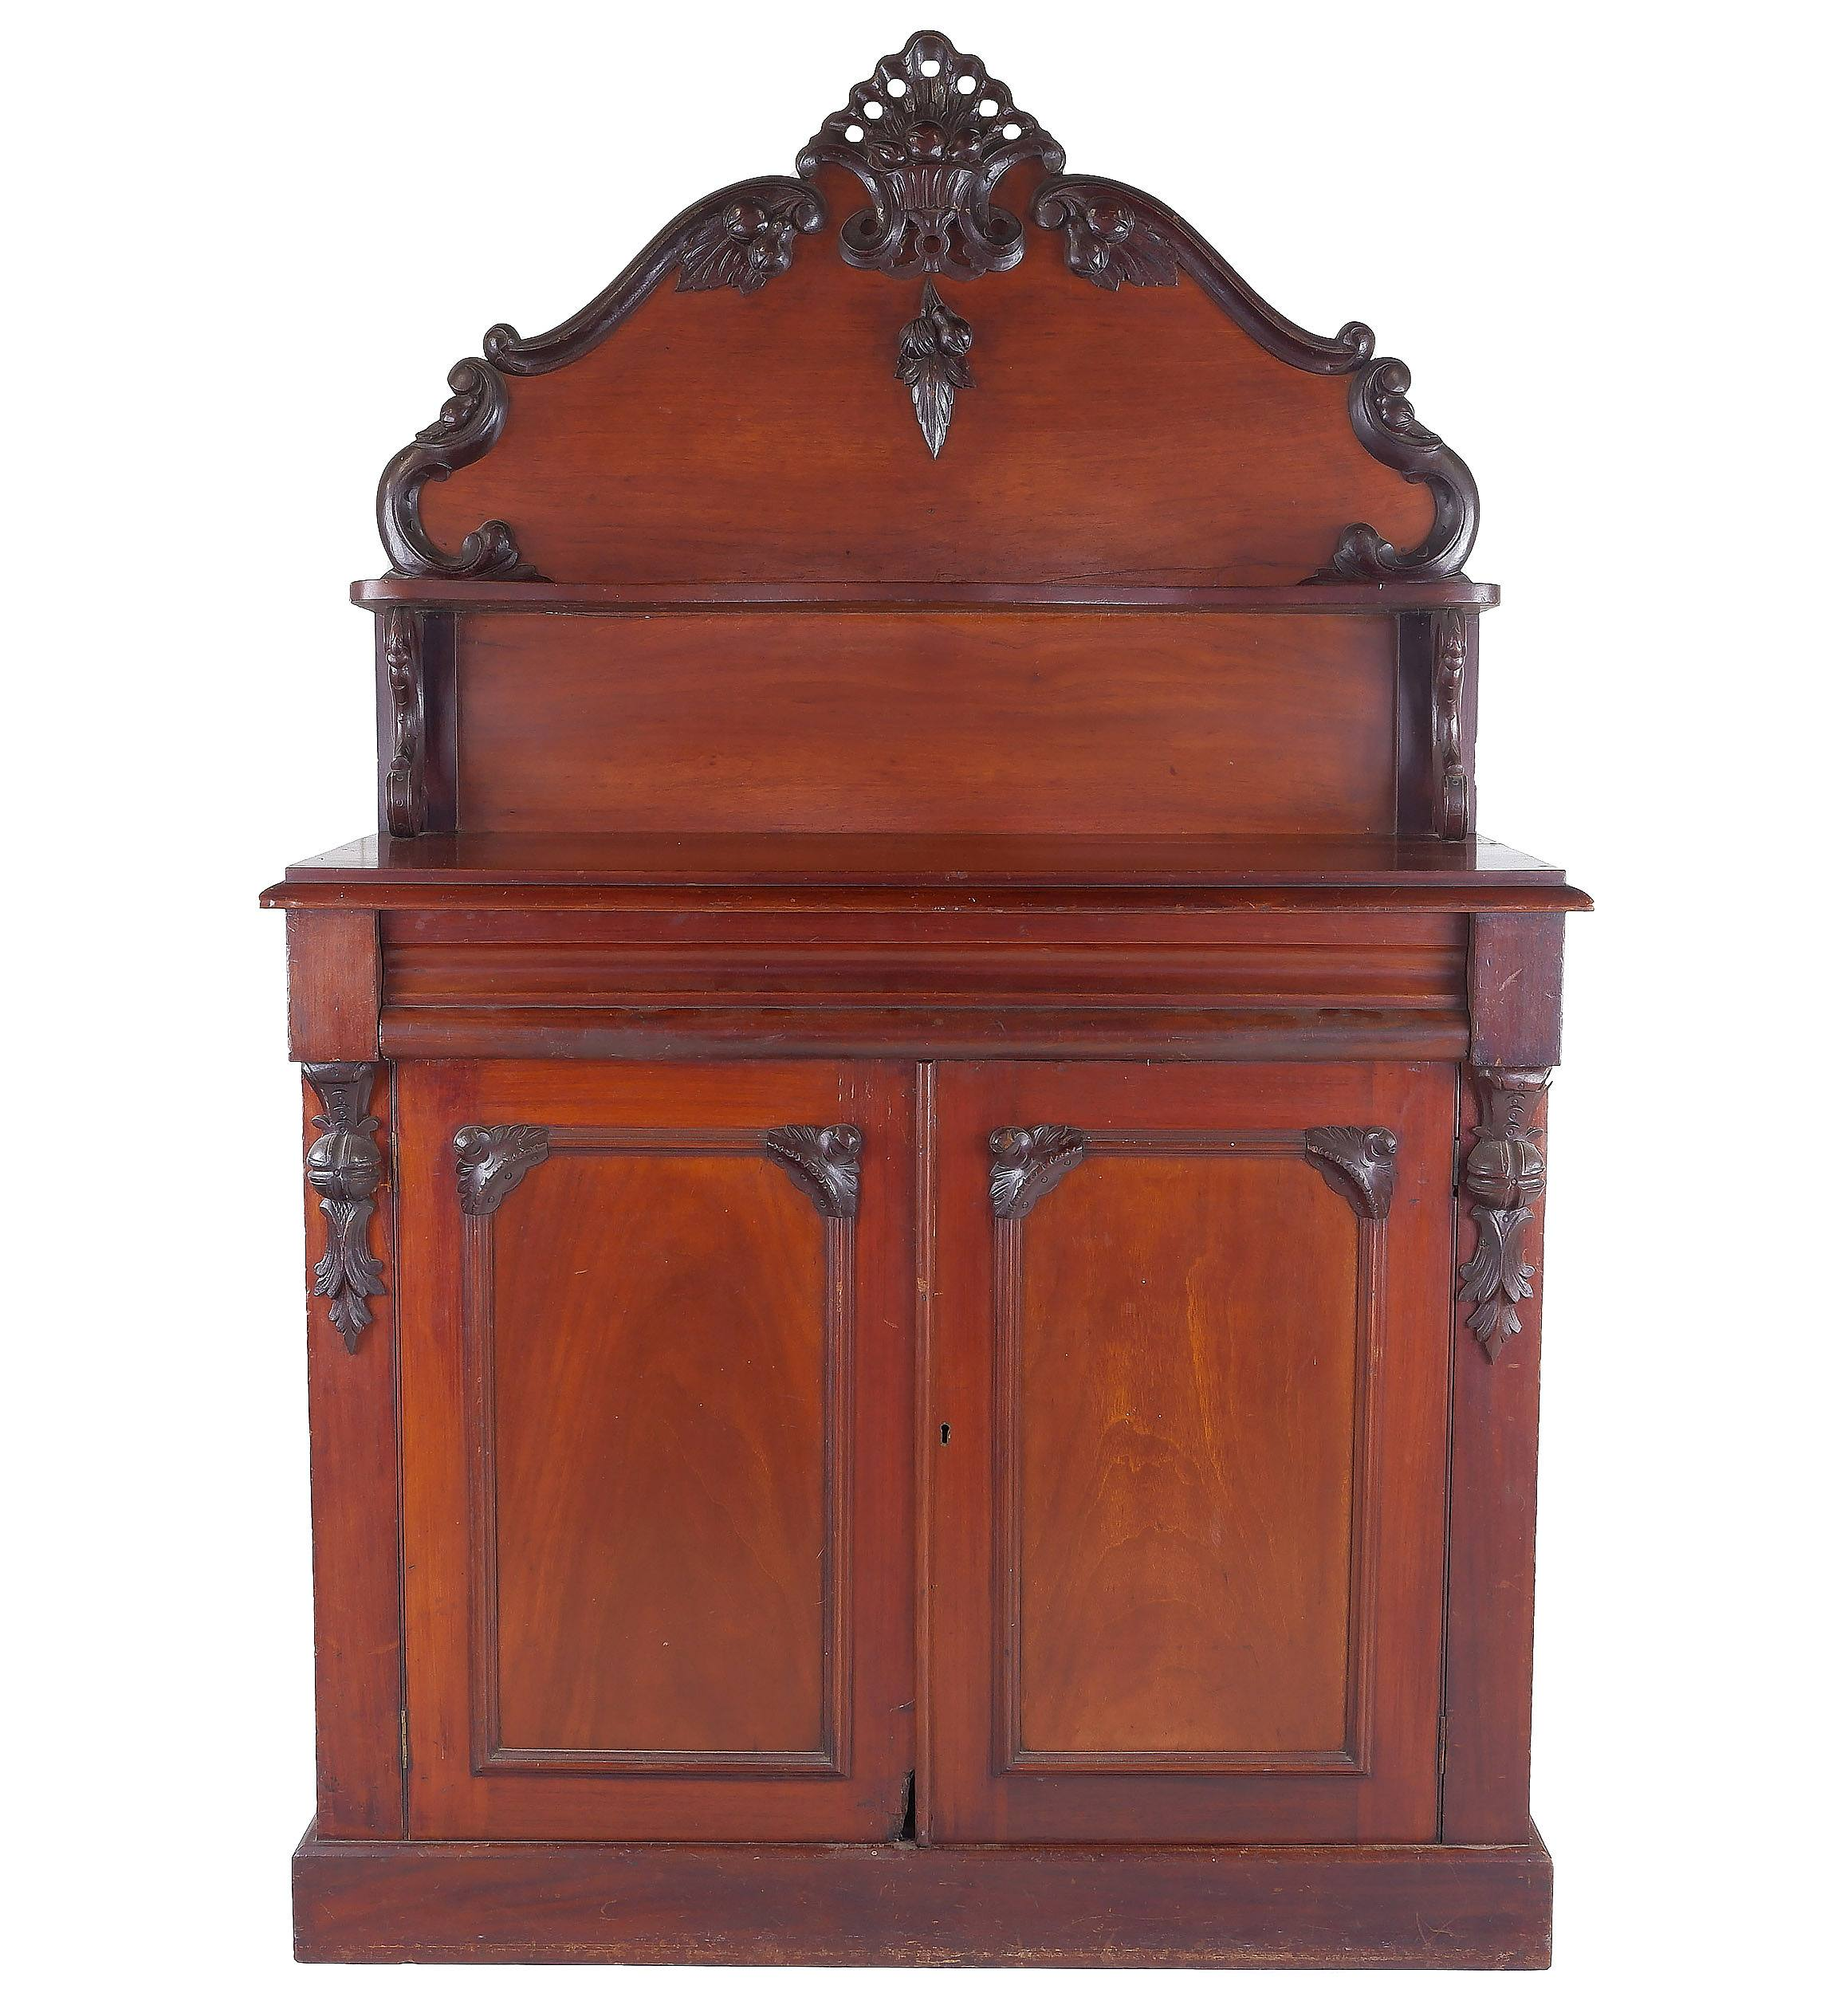 'Australian Cedar Chiffonier, 4th Quarter of the 19th Century'